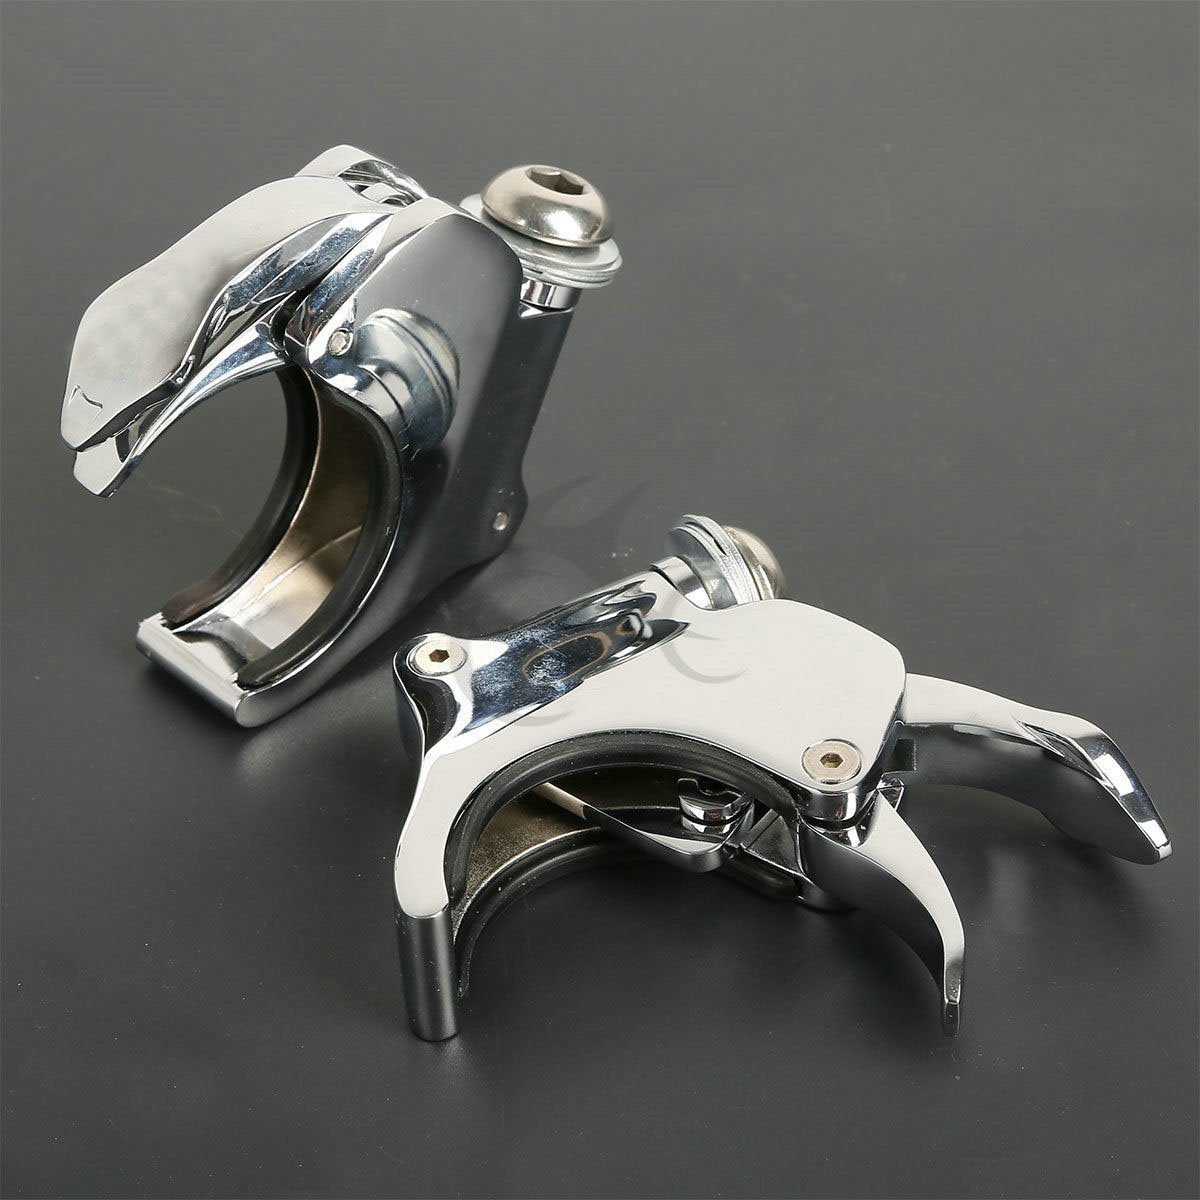 XFMT 49mm Detachable Windshield Clamp Compatible with Harley Wide Glide FXDWG Compatible withty Eight XL1200X